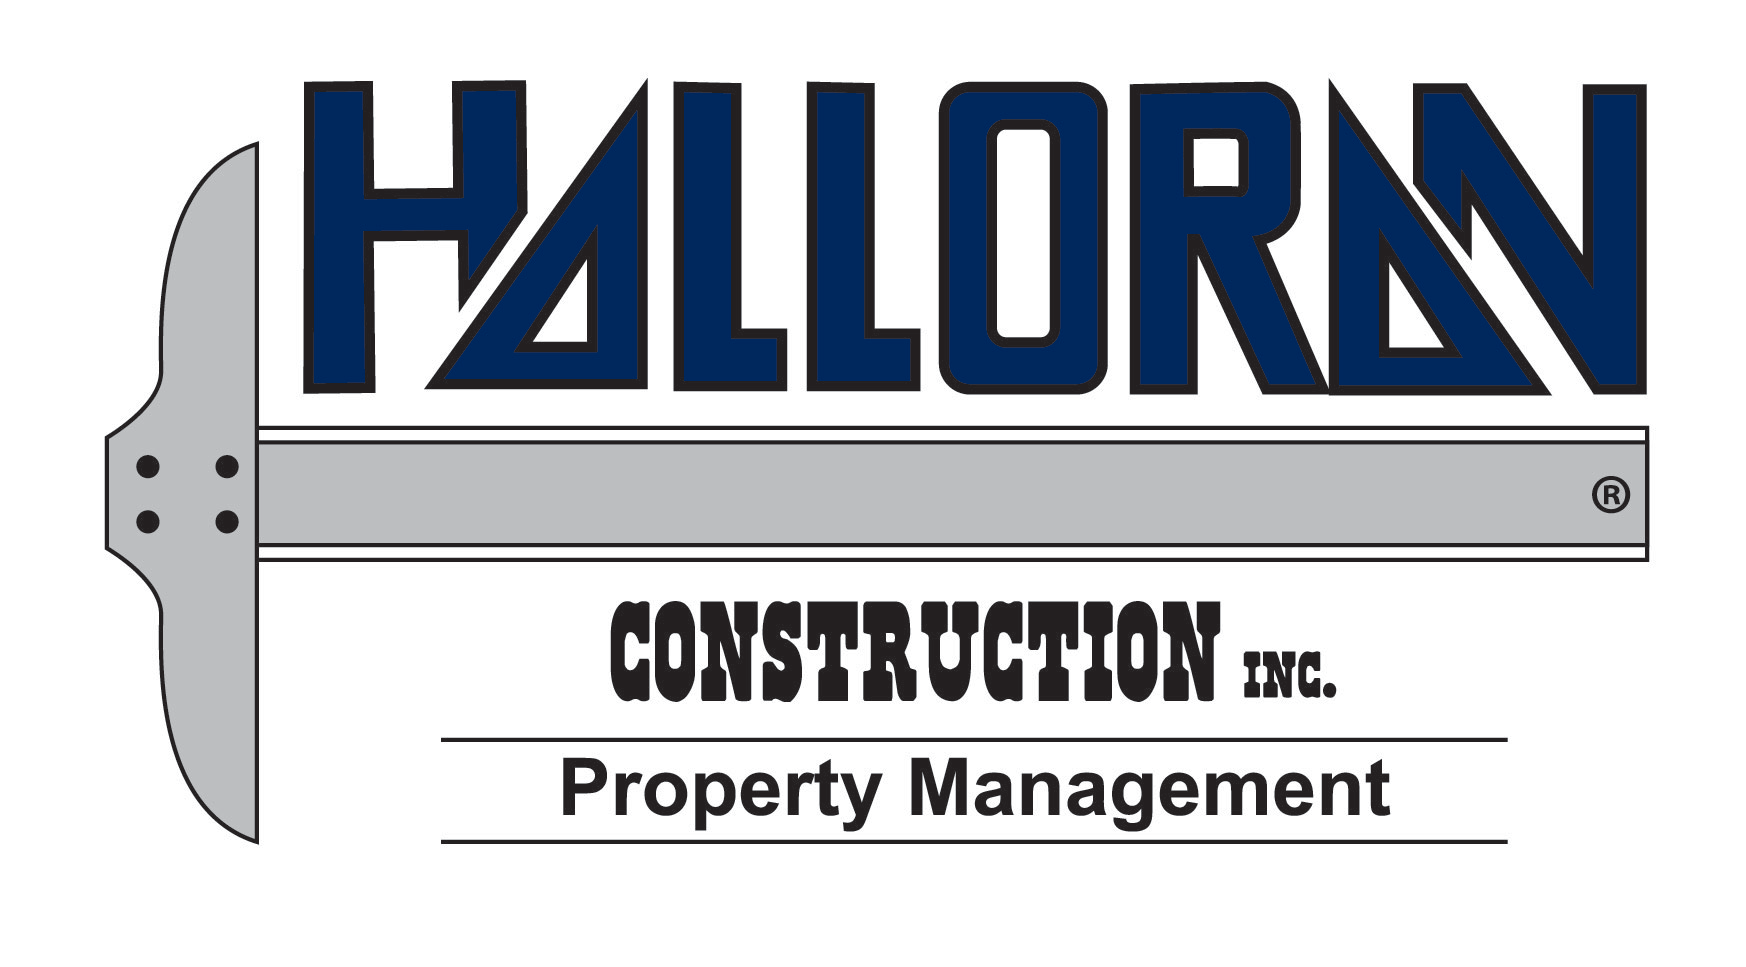 Halloran Construction, Inc.